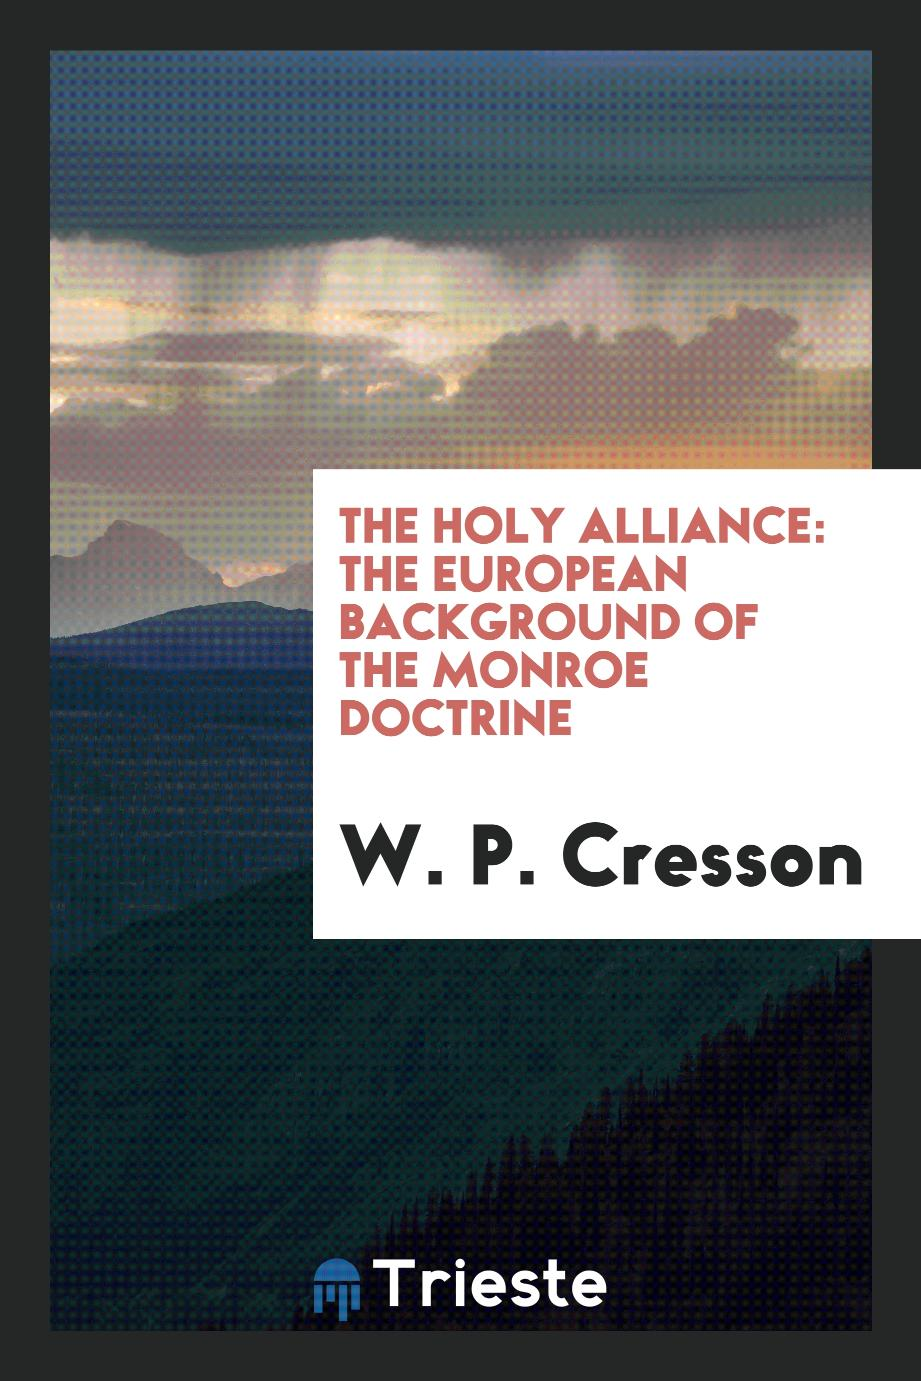 W. P. Cresson - The Holy Alliance: The European Background of the Monroe Doctrine